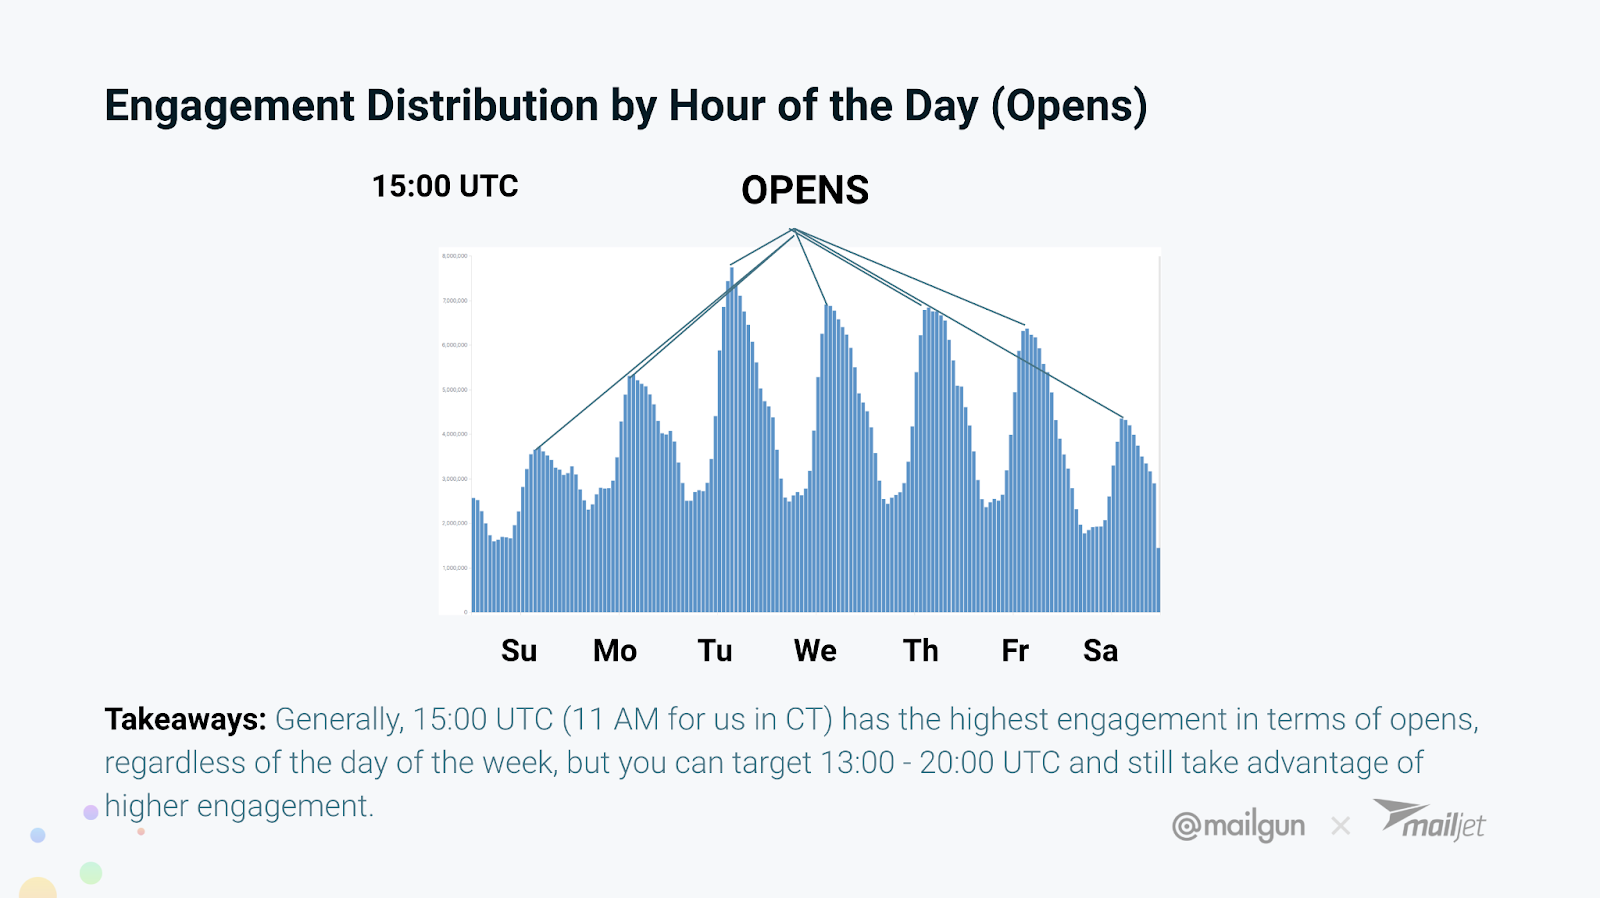 email engagement distribution by hour of the day